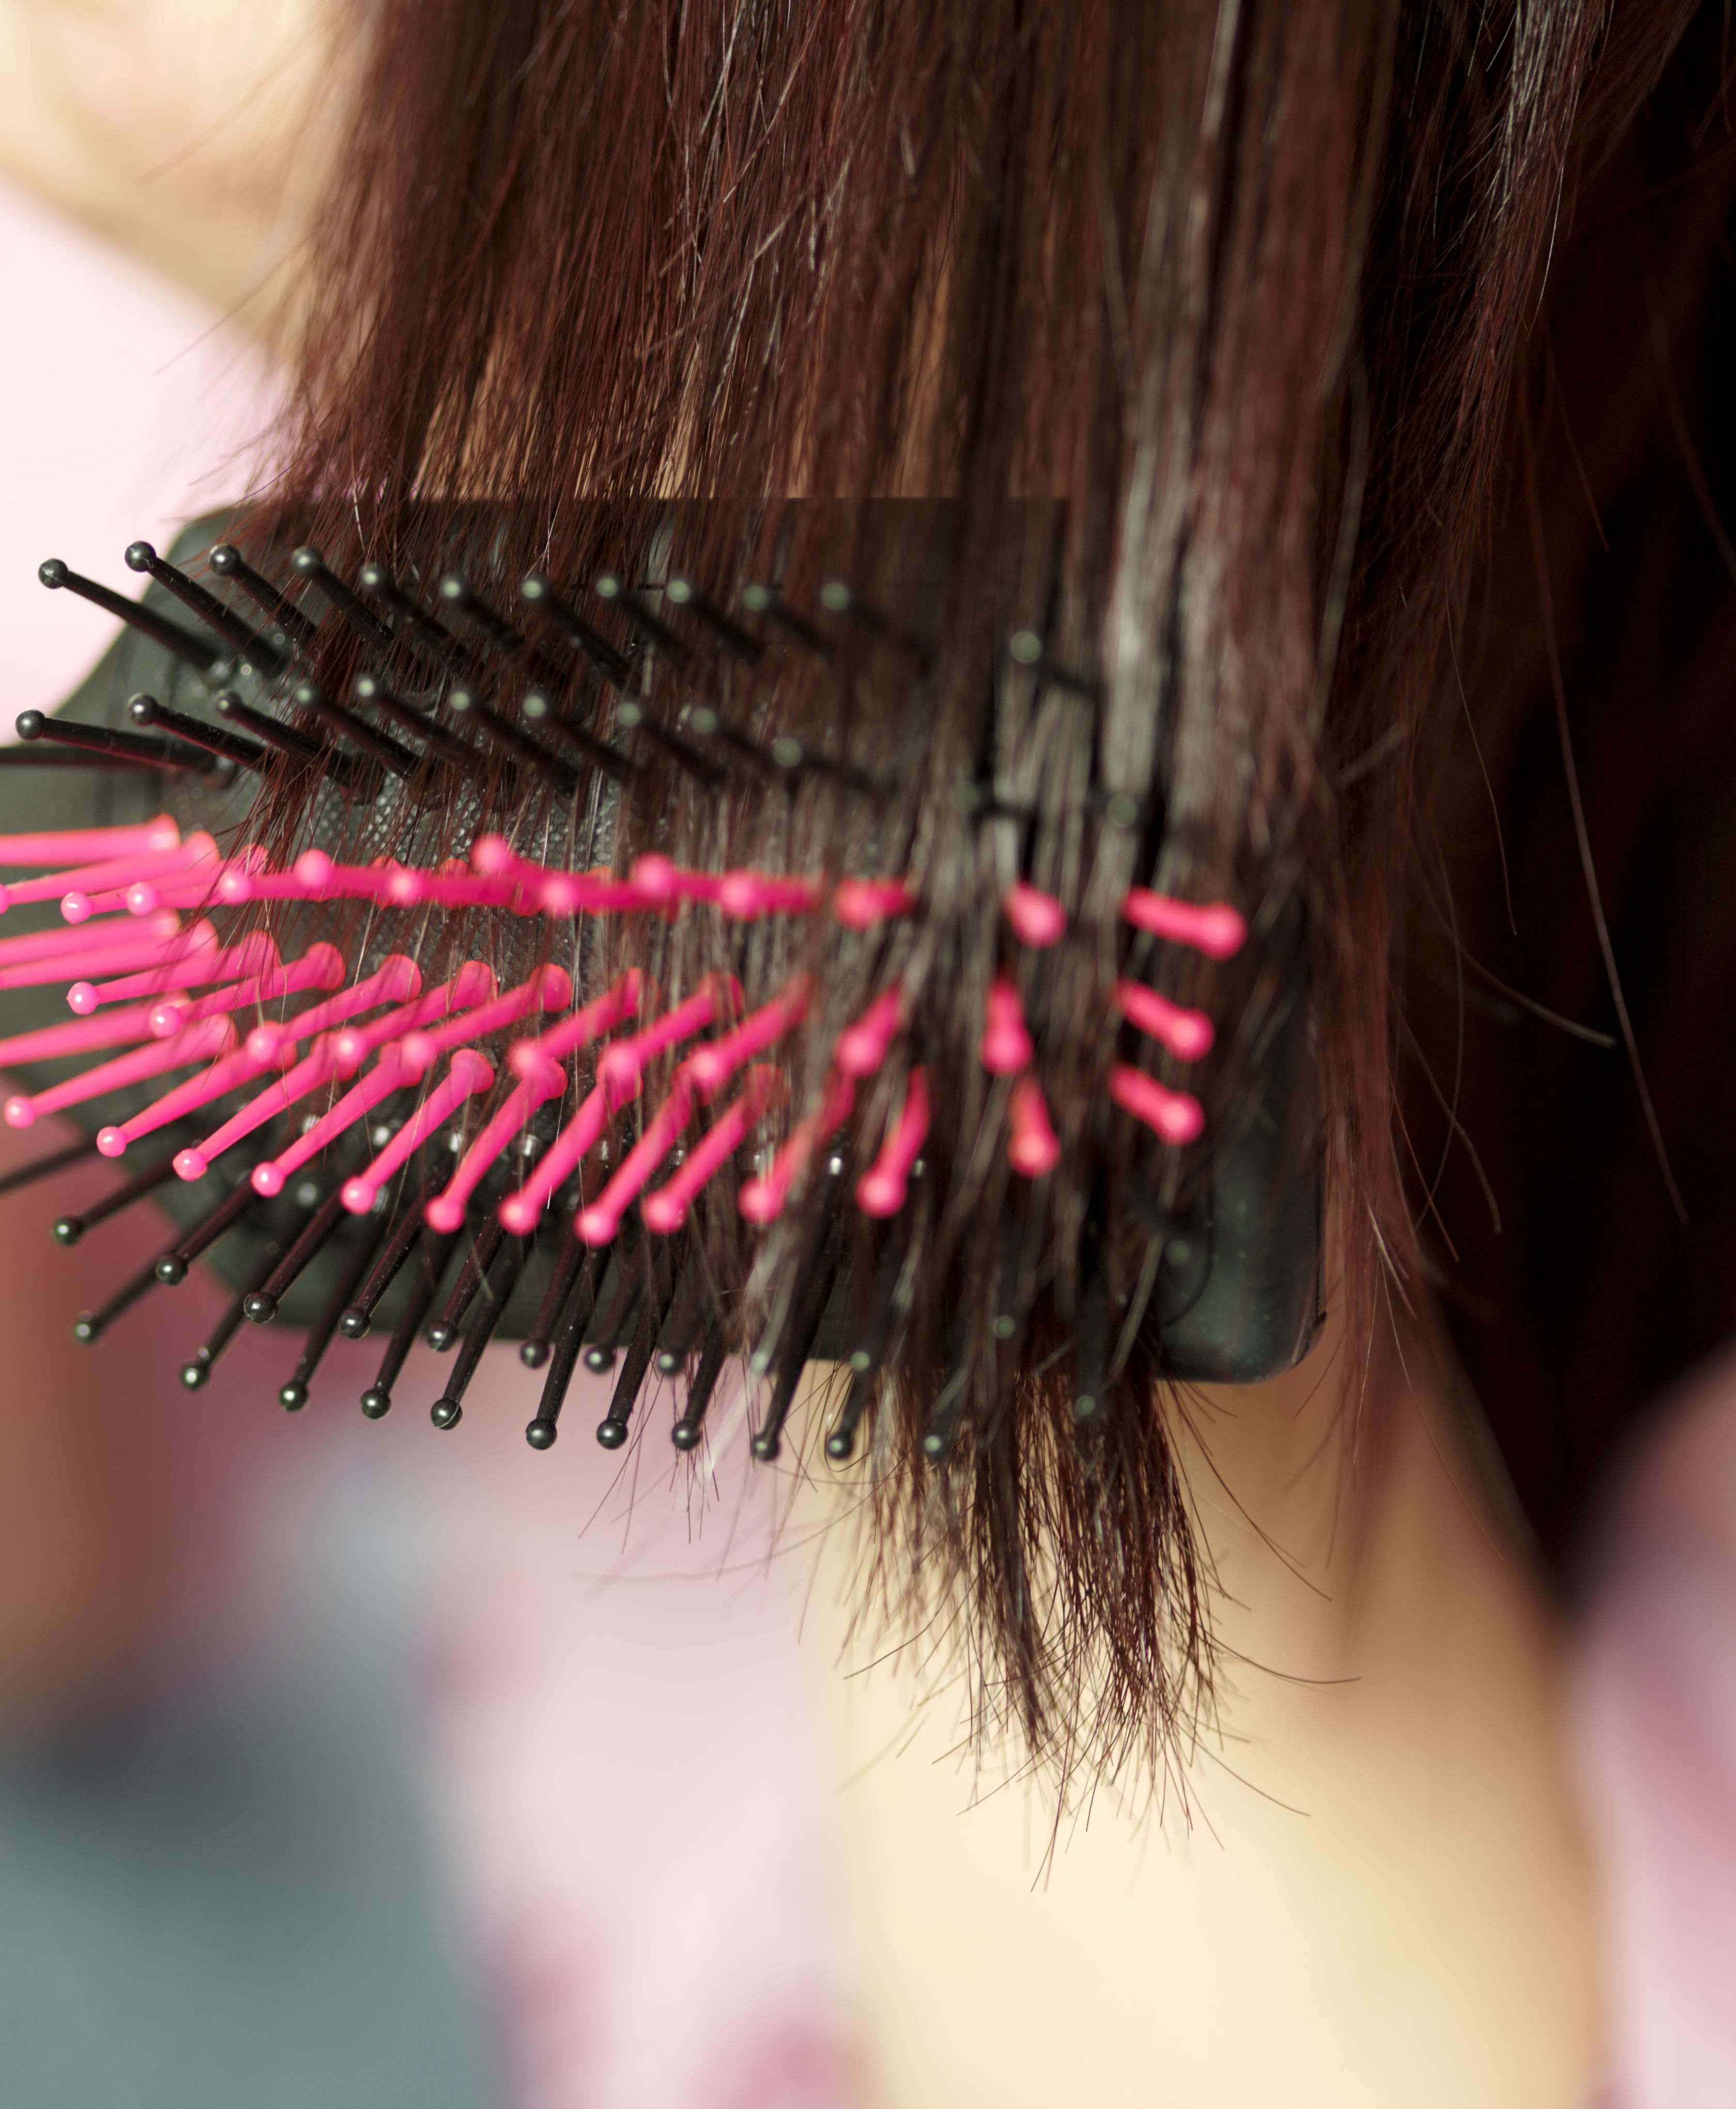 how to get gum out of hair without cutting